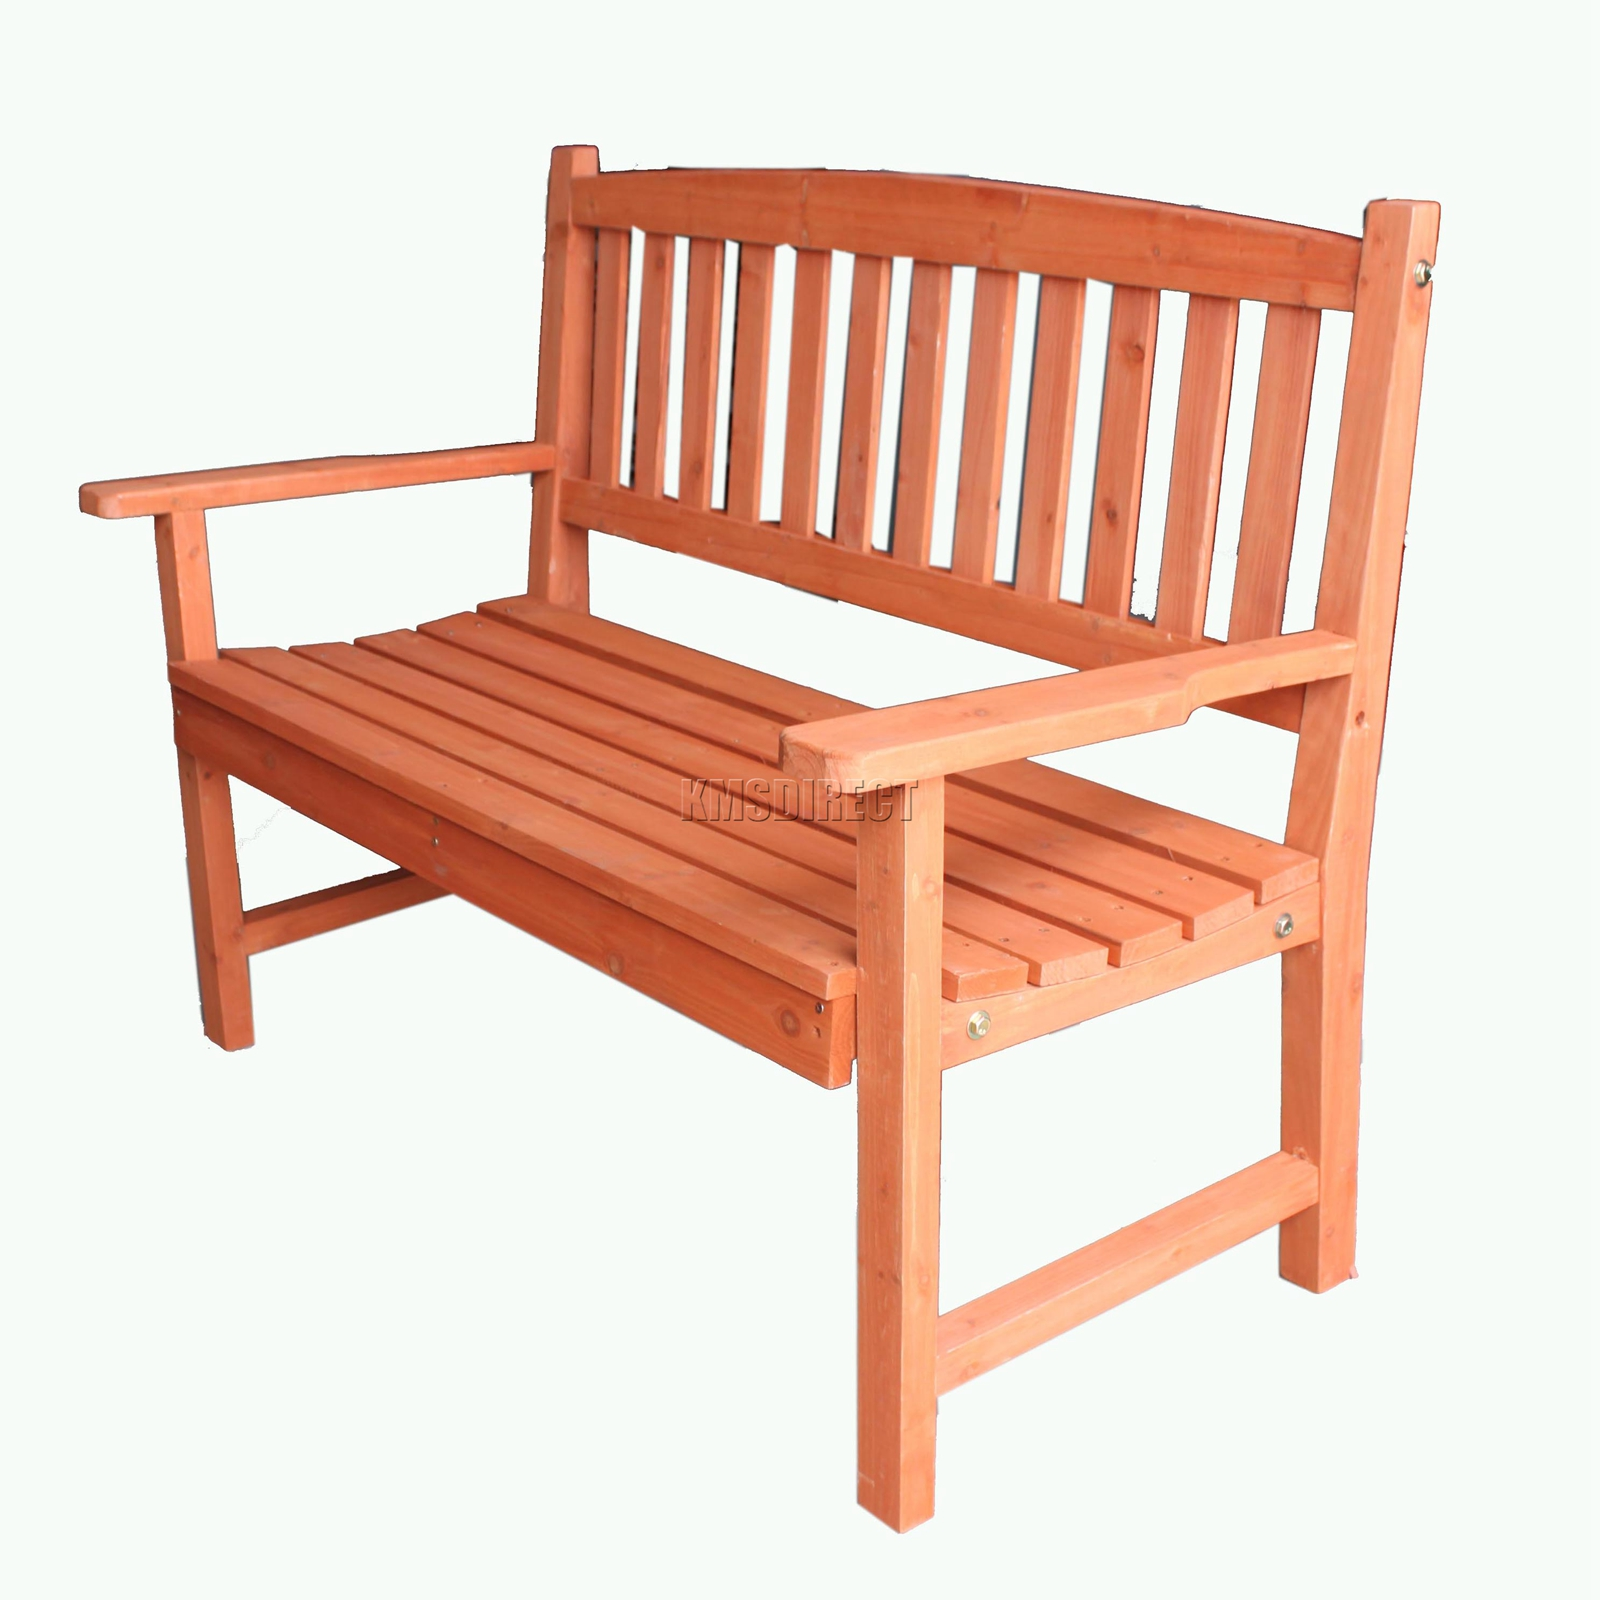 Superb img of FoxHunter Outdoor Wooden Garden Bench 2 Seat Seater Hardwood Park  with #C34F08 color and 1600x1600 pixels